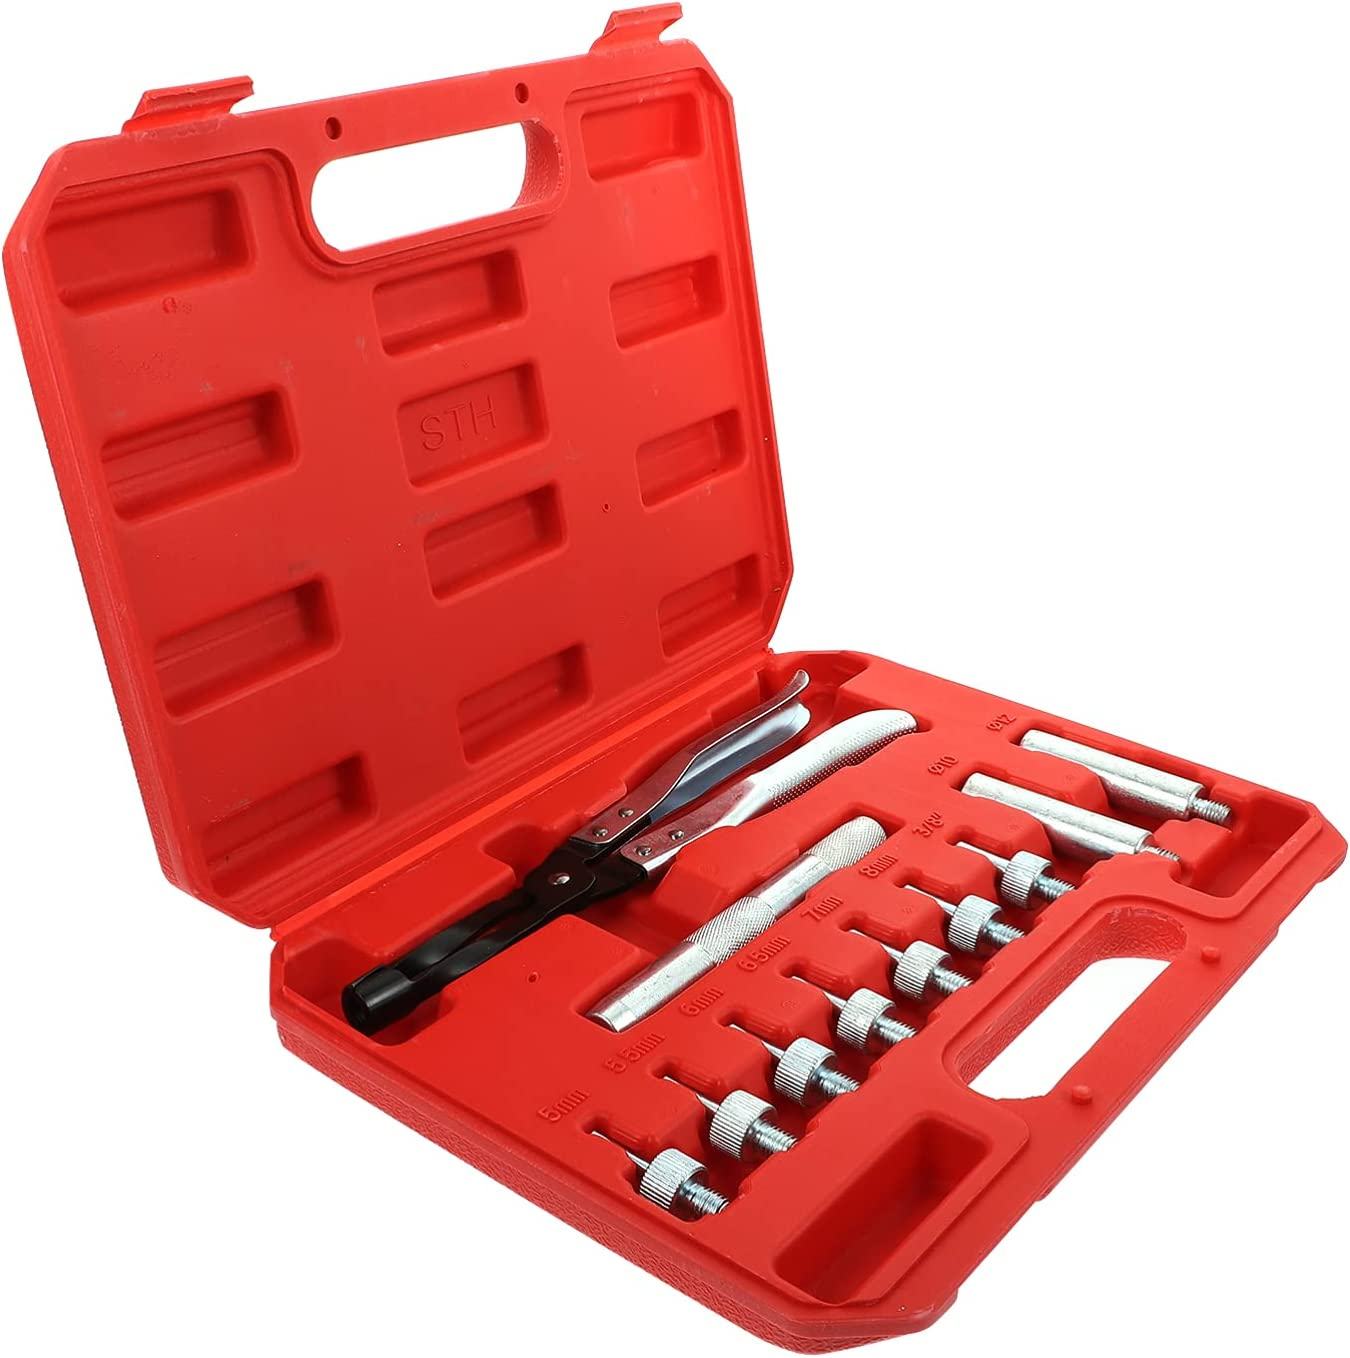 5 ☆ popular TEHAUX Valve Seal Remover and Handle service Pliers Drive Installer Kit